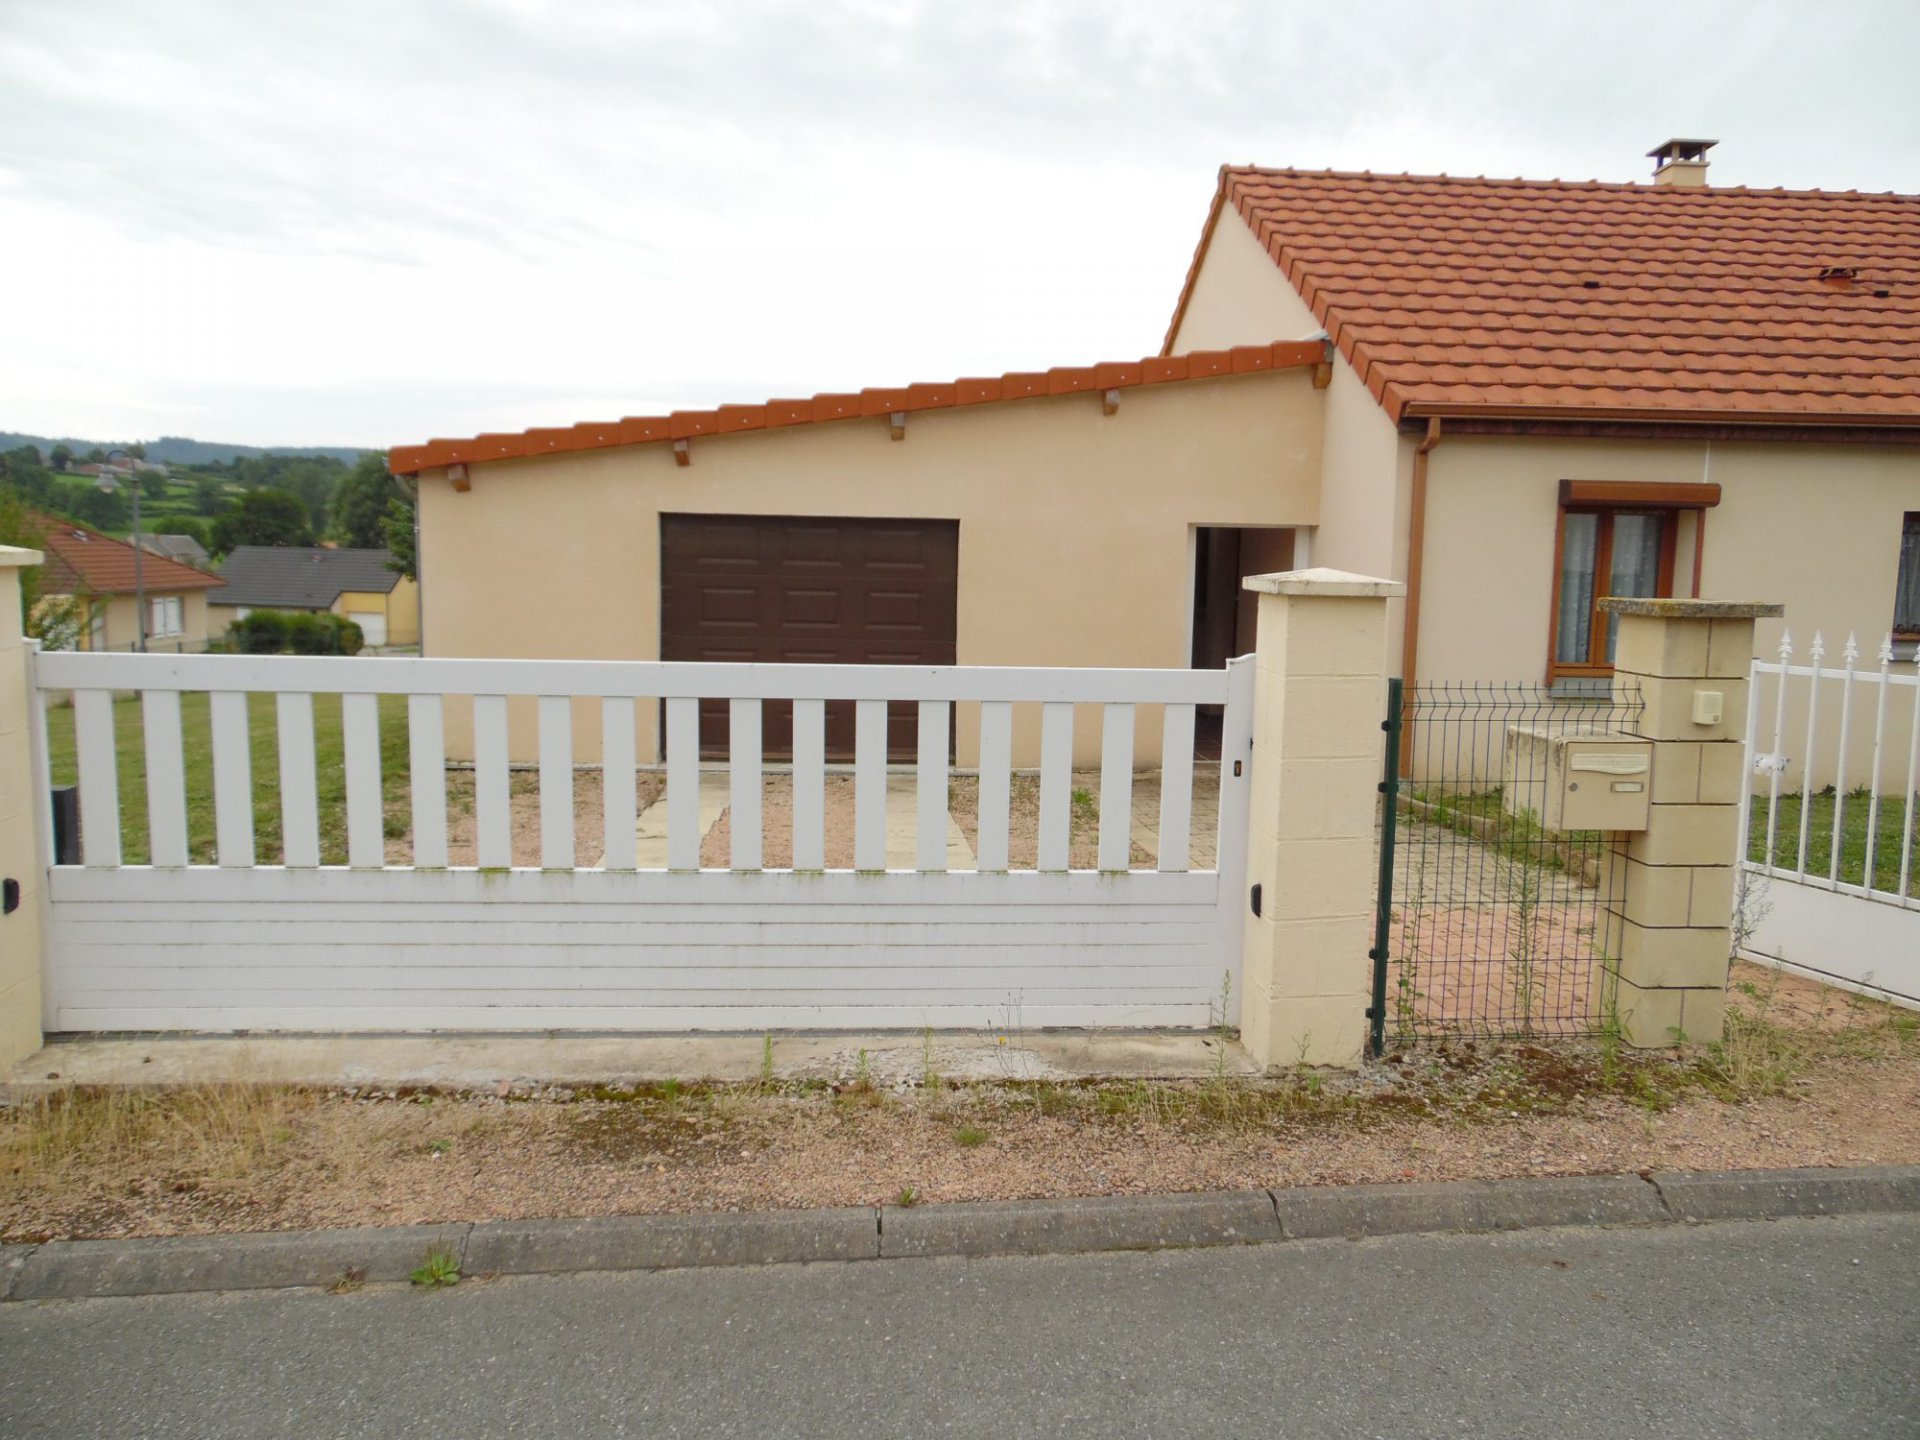 For sale in Puy de Dôme, House, 2009 garage and conservatory